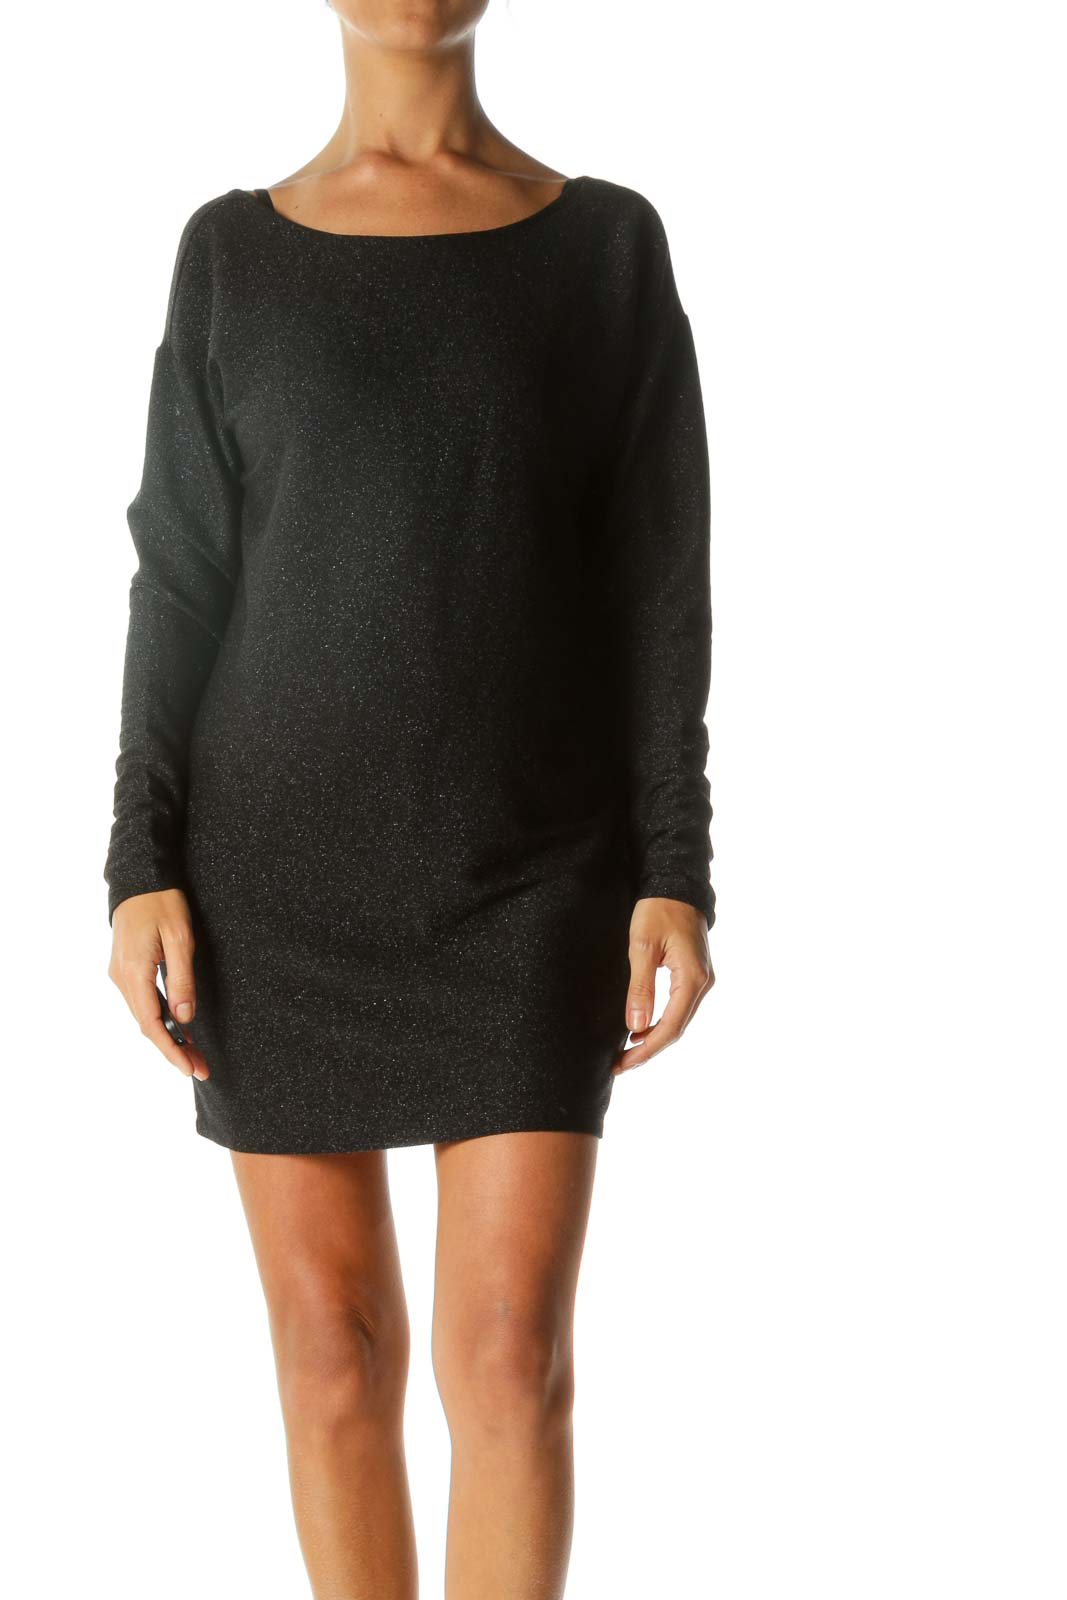 Black Shiny Metallic Back Scoop Long Sleeve Textured Cocktail Dress